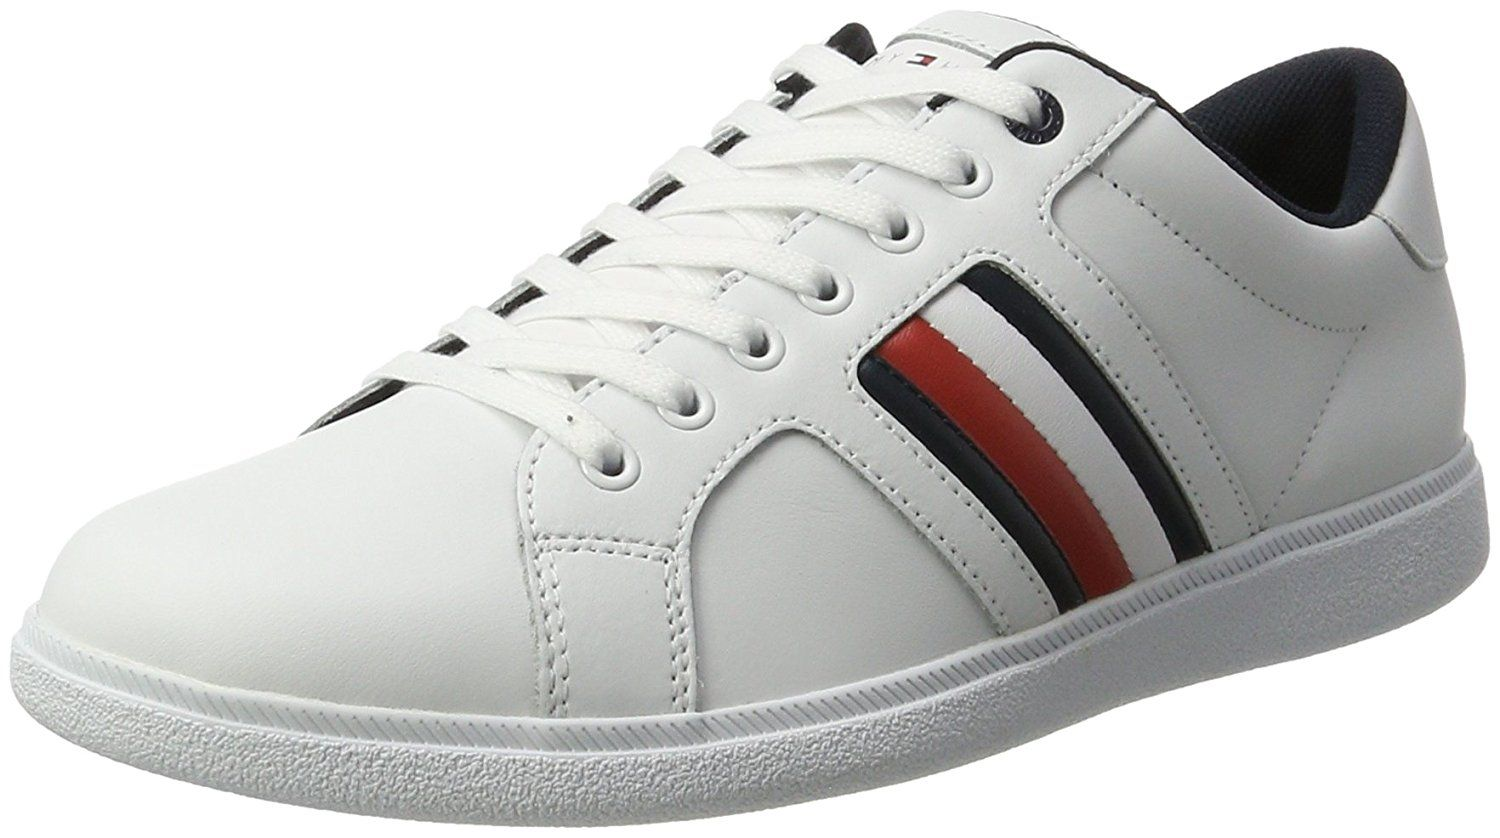 Mens D2285anny 1c3 Low-Top Sneakers Tommy Hilfiger lu7ELyZ3xF